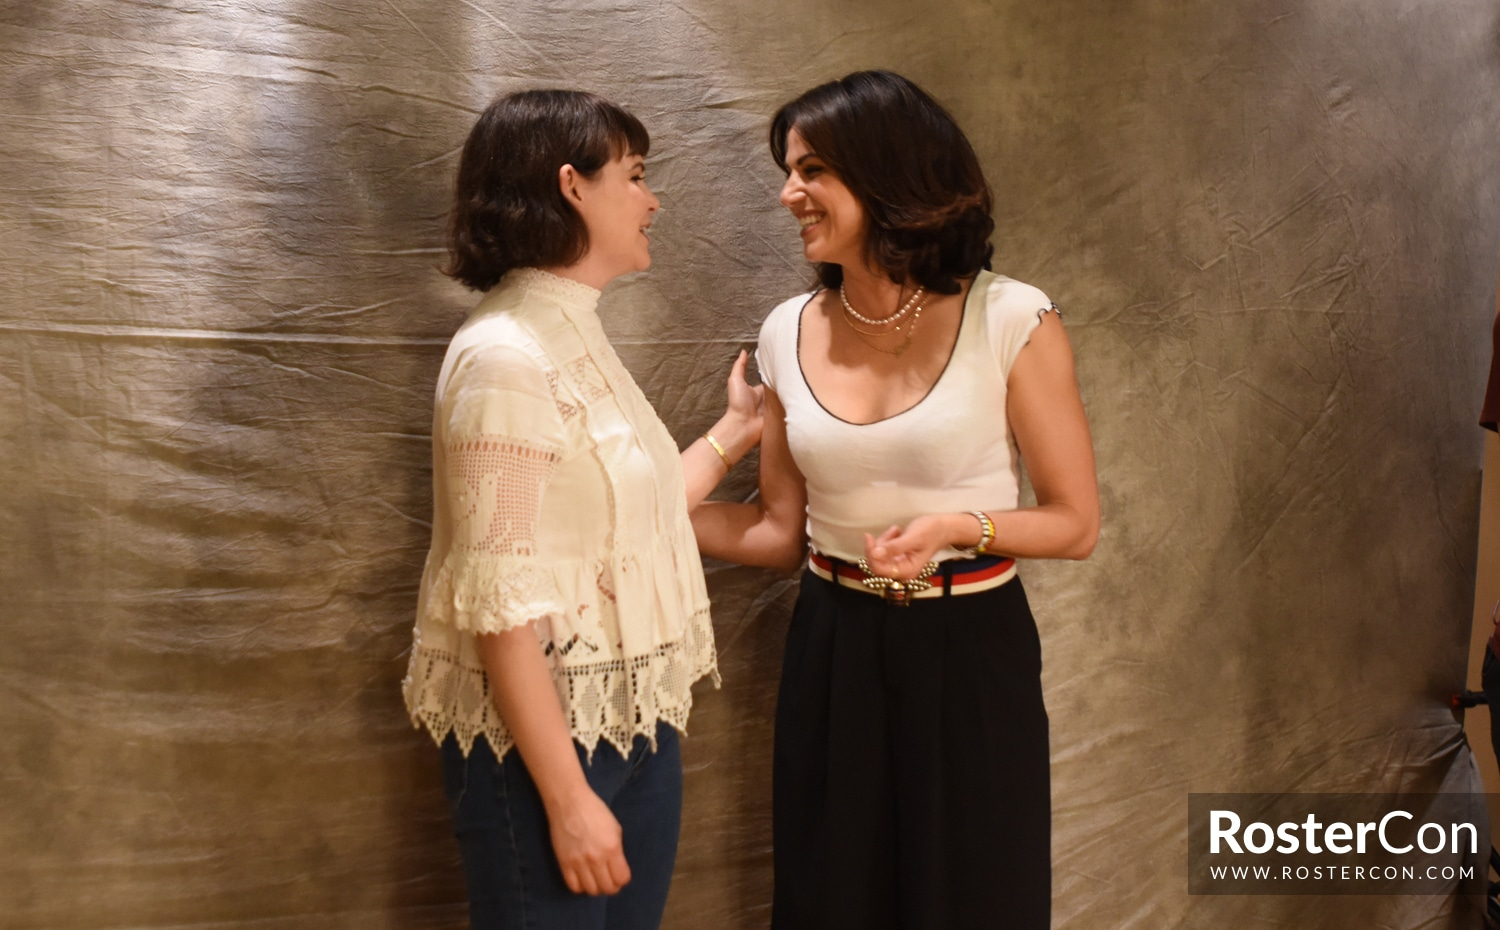 Ginnifer Goodwin & Lana Parrilla - The Happy Ending Convention 3 - Once Upon A Time